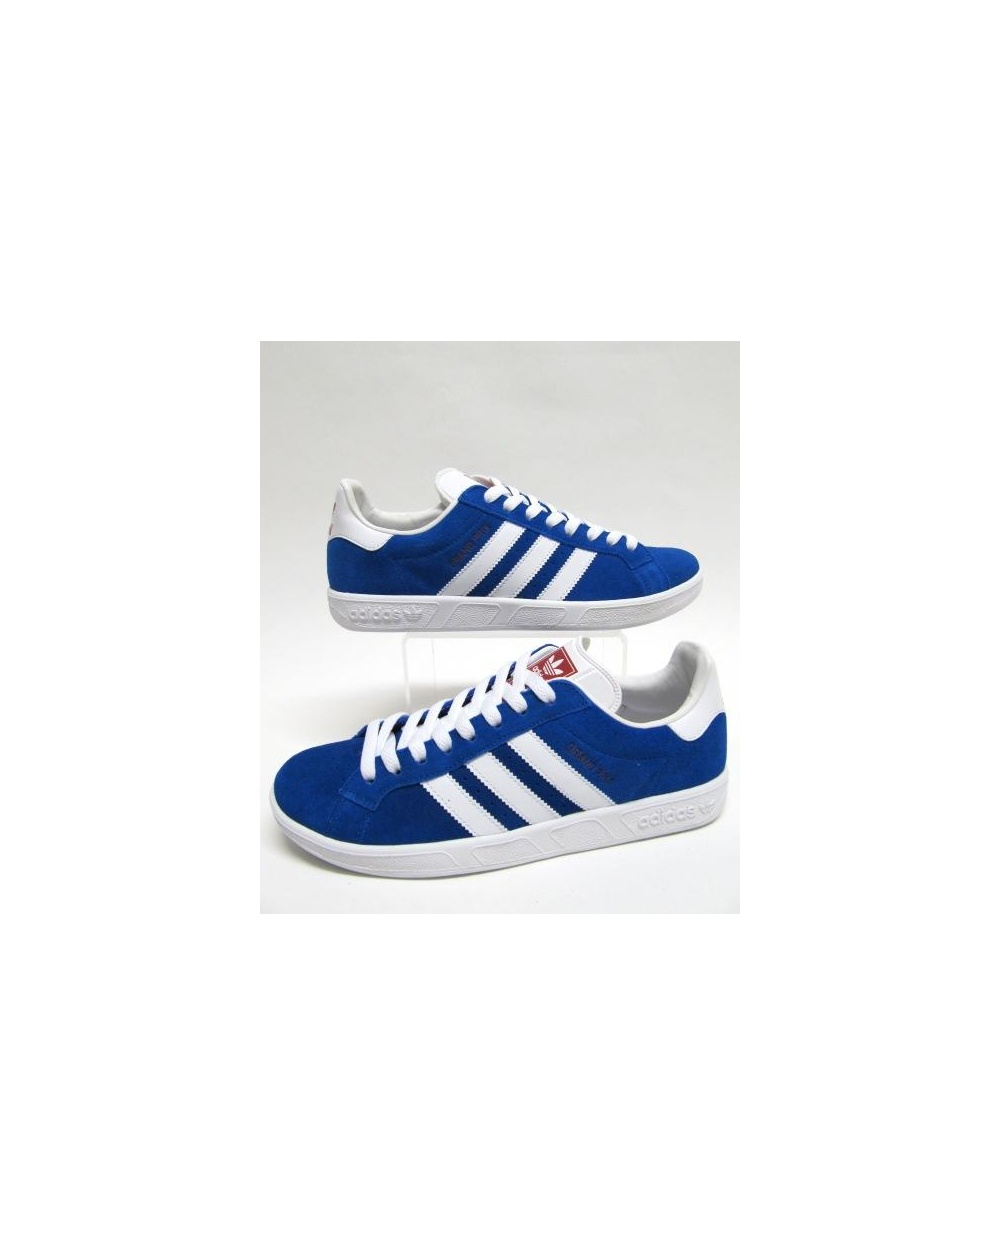 adidas grand prix trainers royal blue white originals. Black Bedroom Furniture Sets. Home Design Ideas